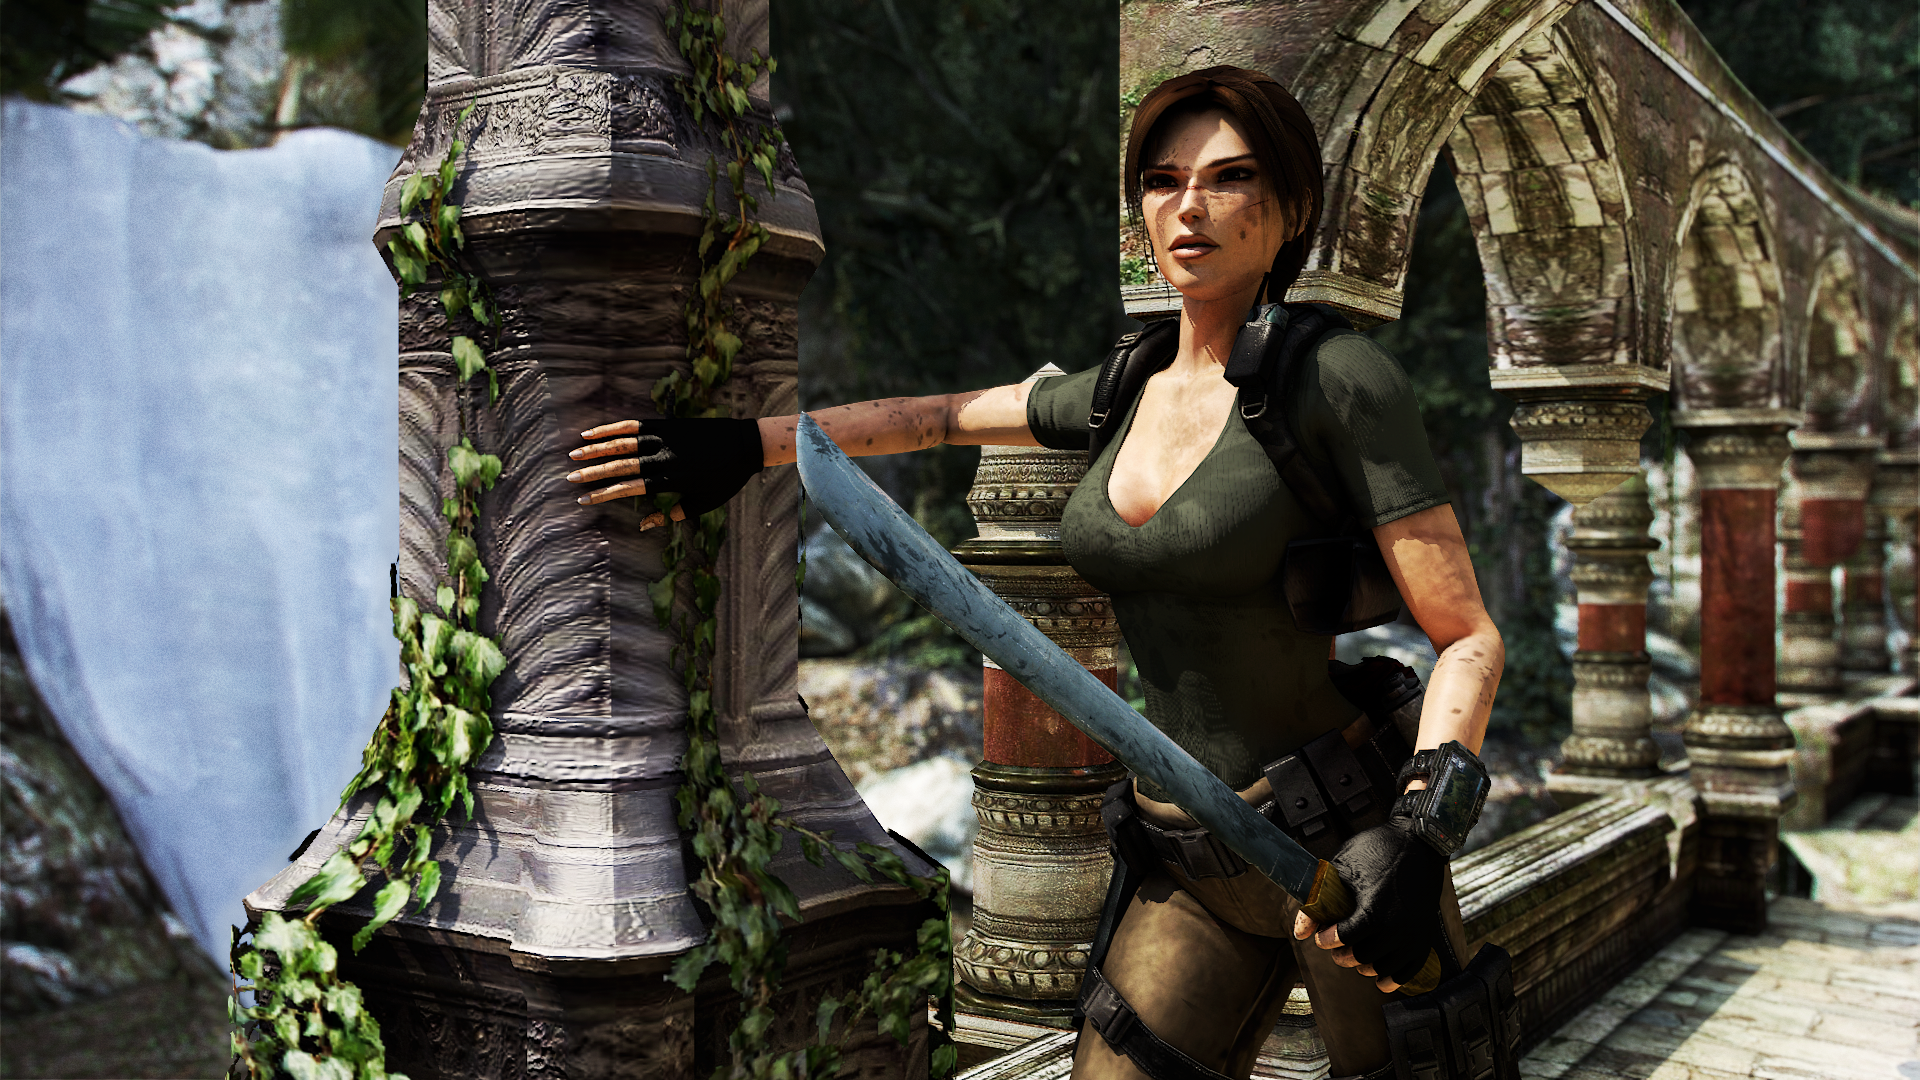 Tomb raider: mountaineer skin for macbook pro